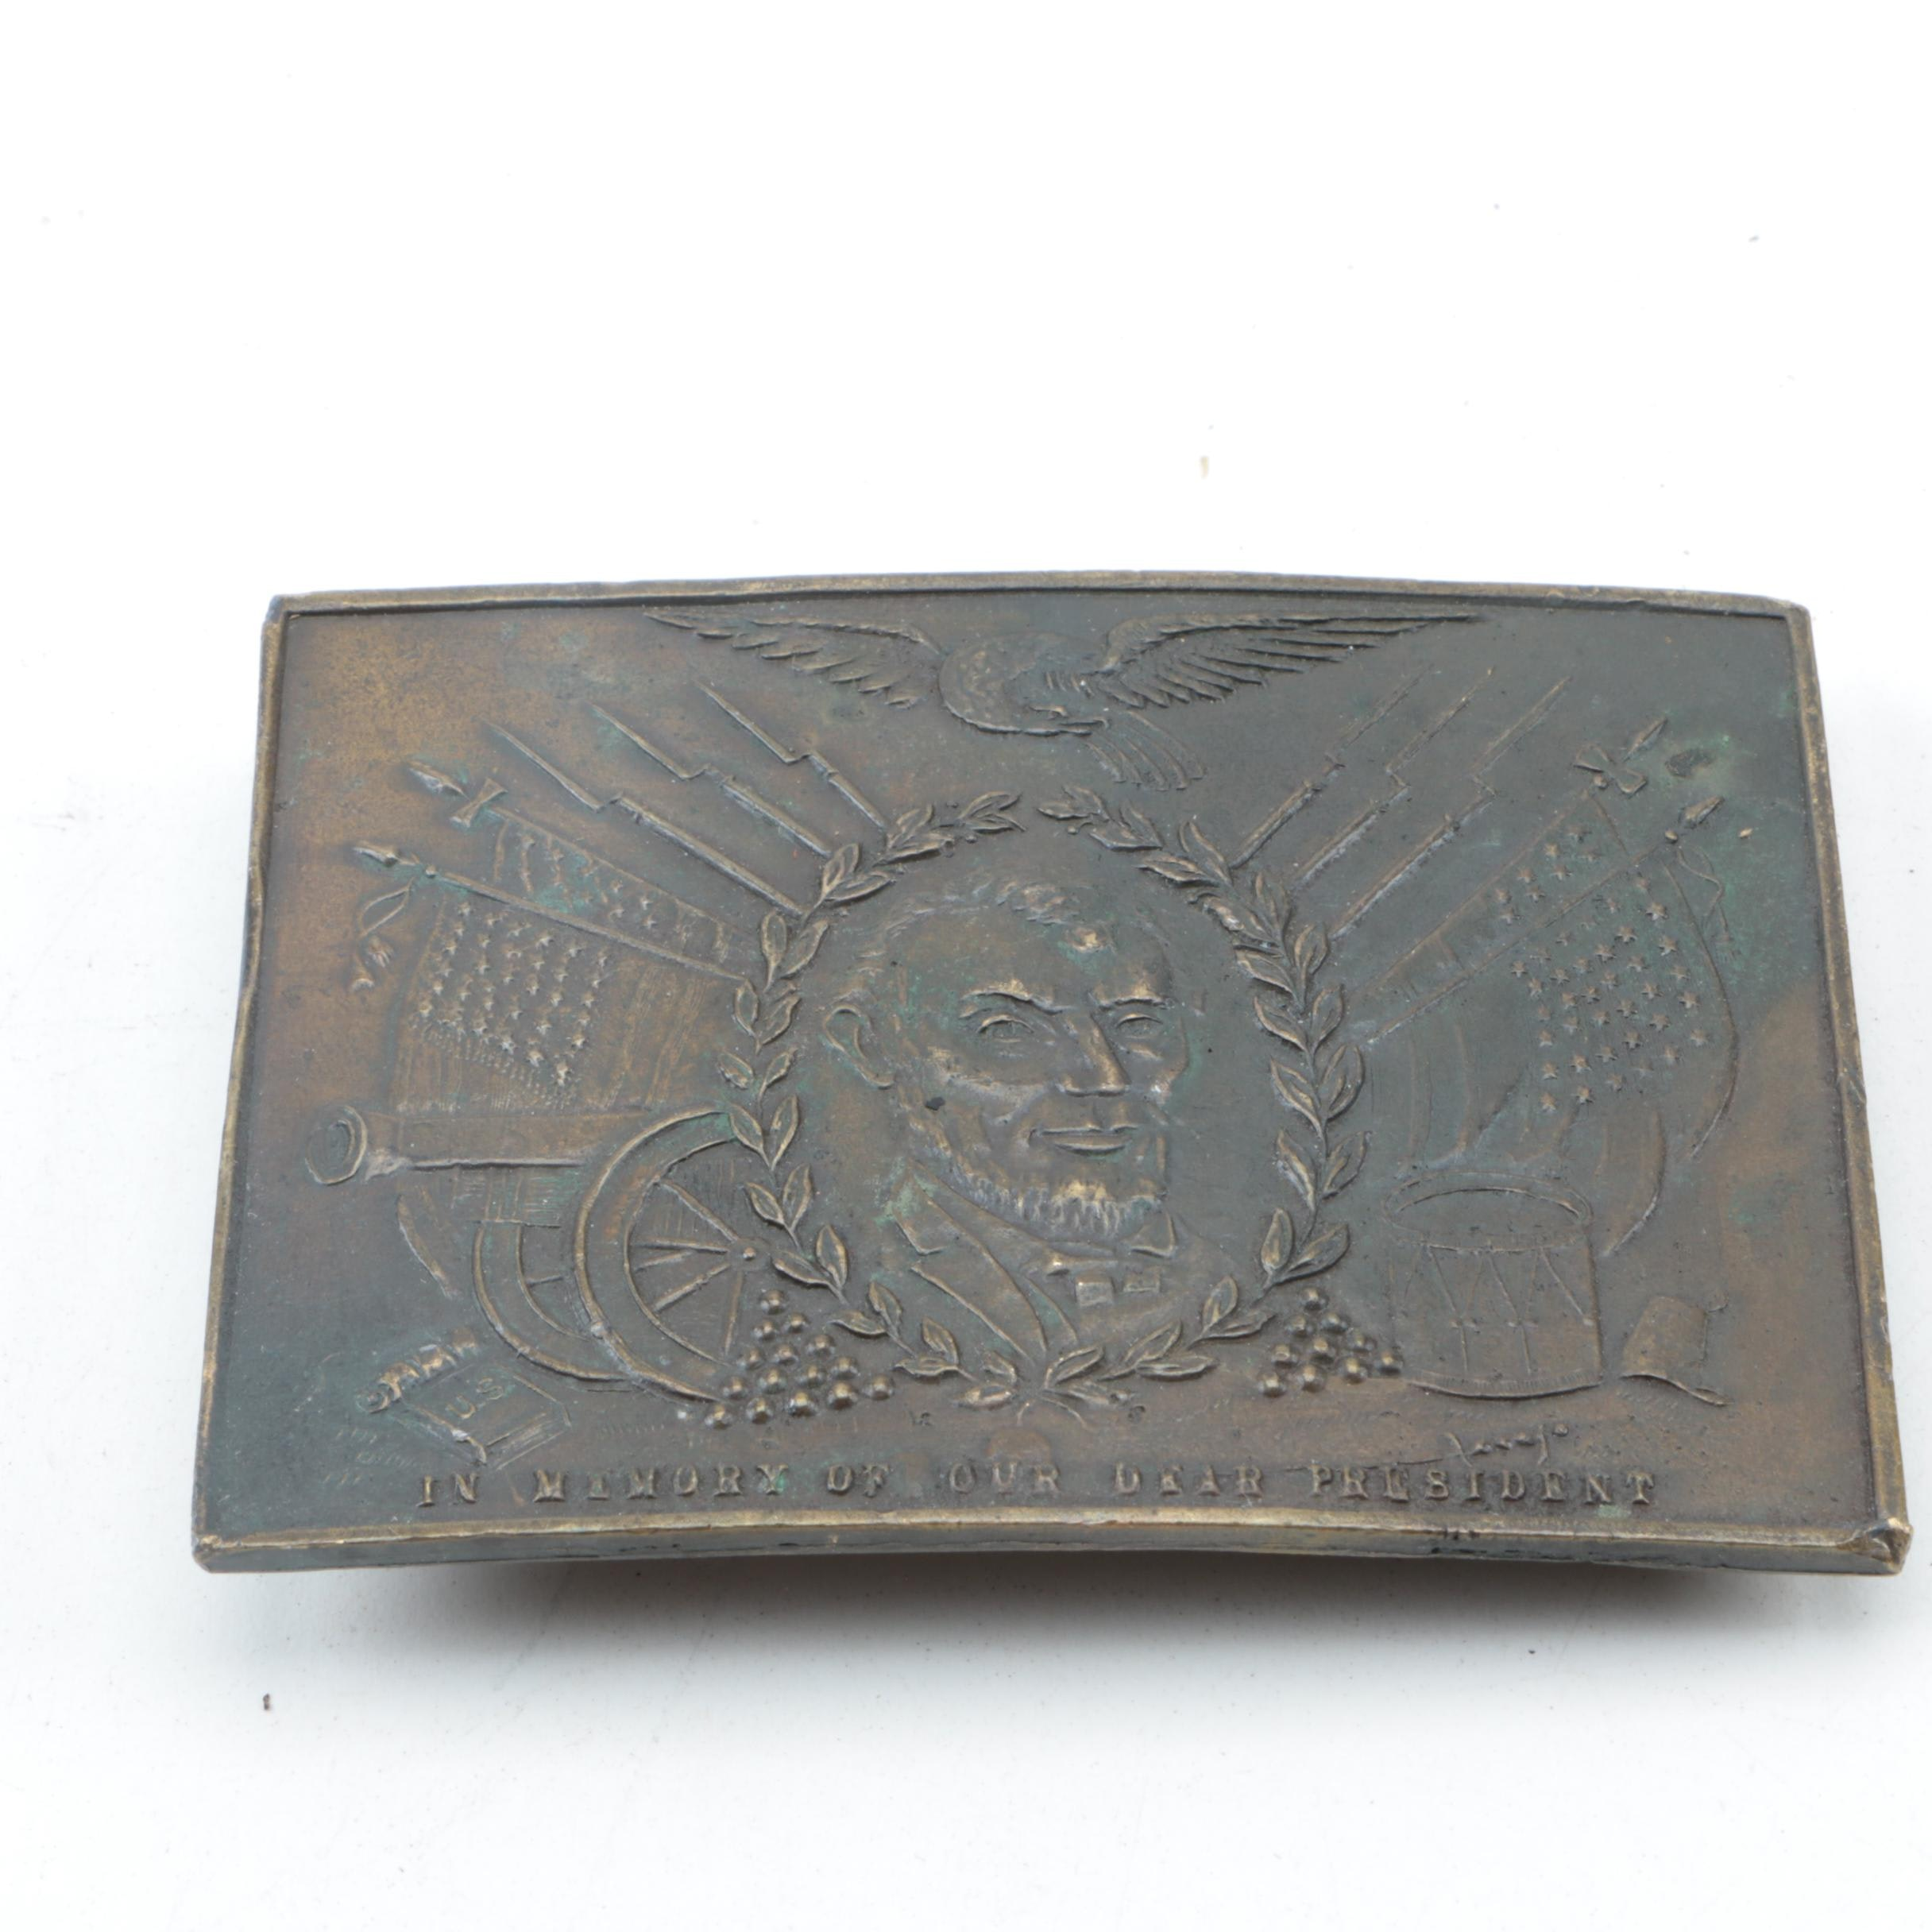 Abraham Lincoln Commemorative Belt Buckle